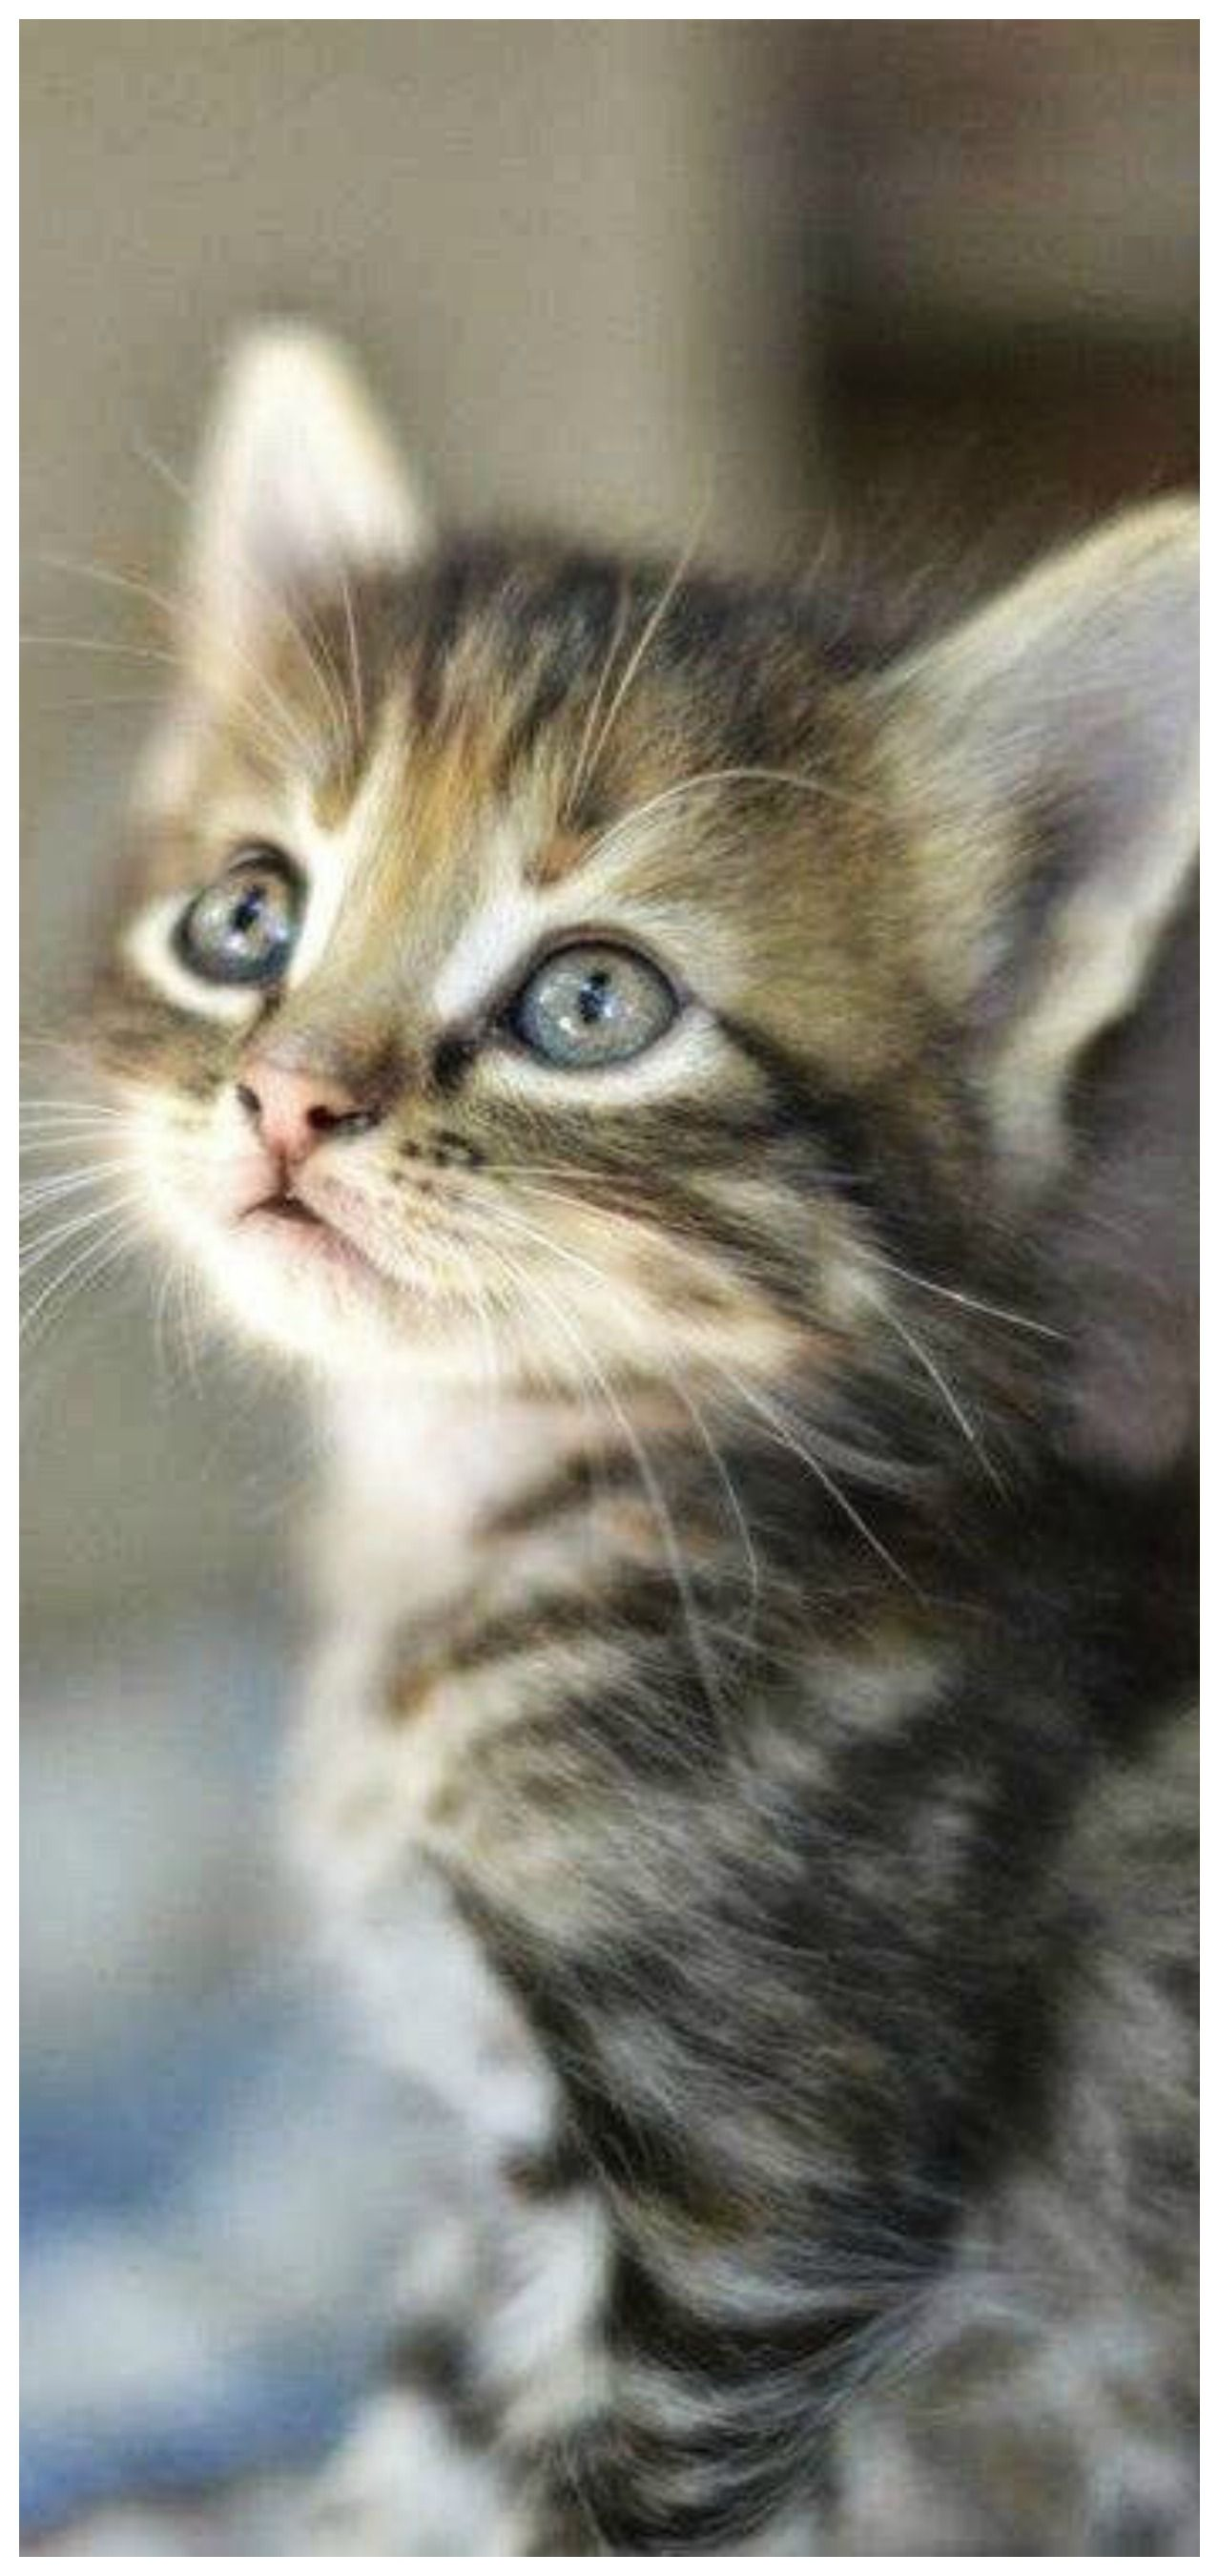 Pin By Isabel Cristina Isabel On The Pet Store Kittens Cutest Kitten Adoption Cute Cats